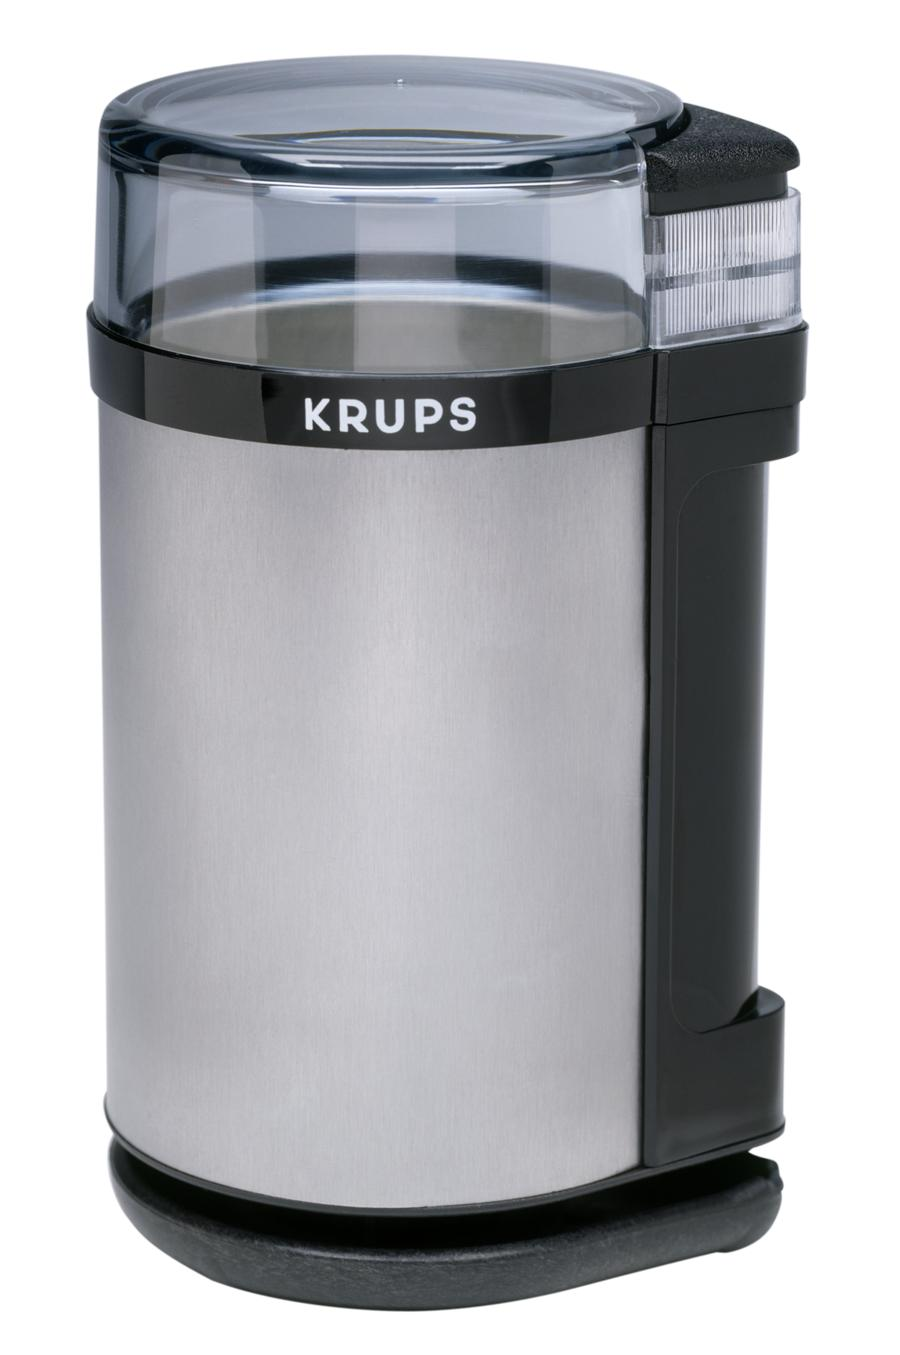 Krups Electric Coffee Grinder and Spice Mill in Black and Stainless Steel